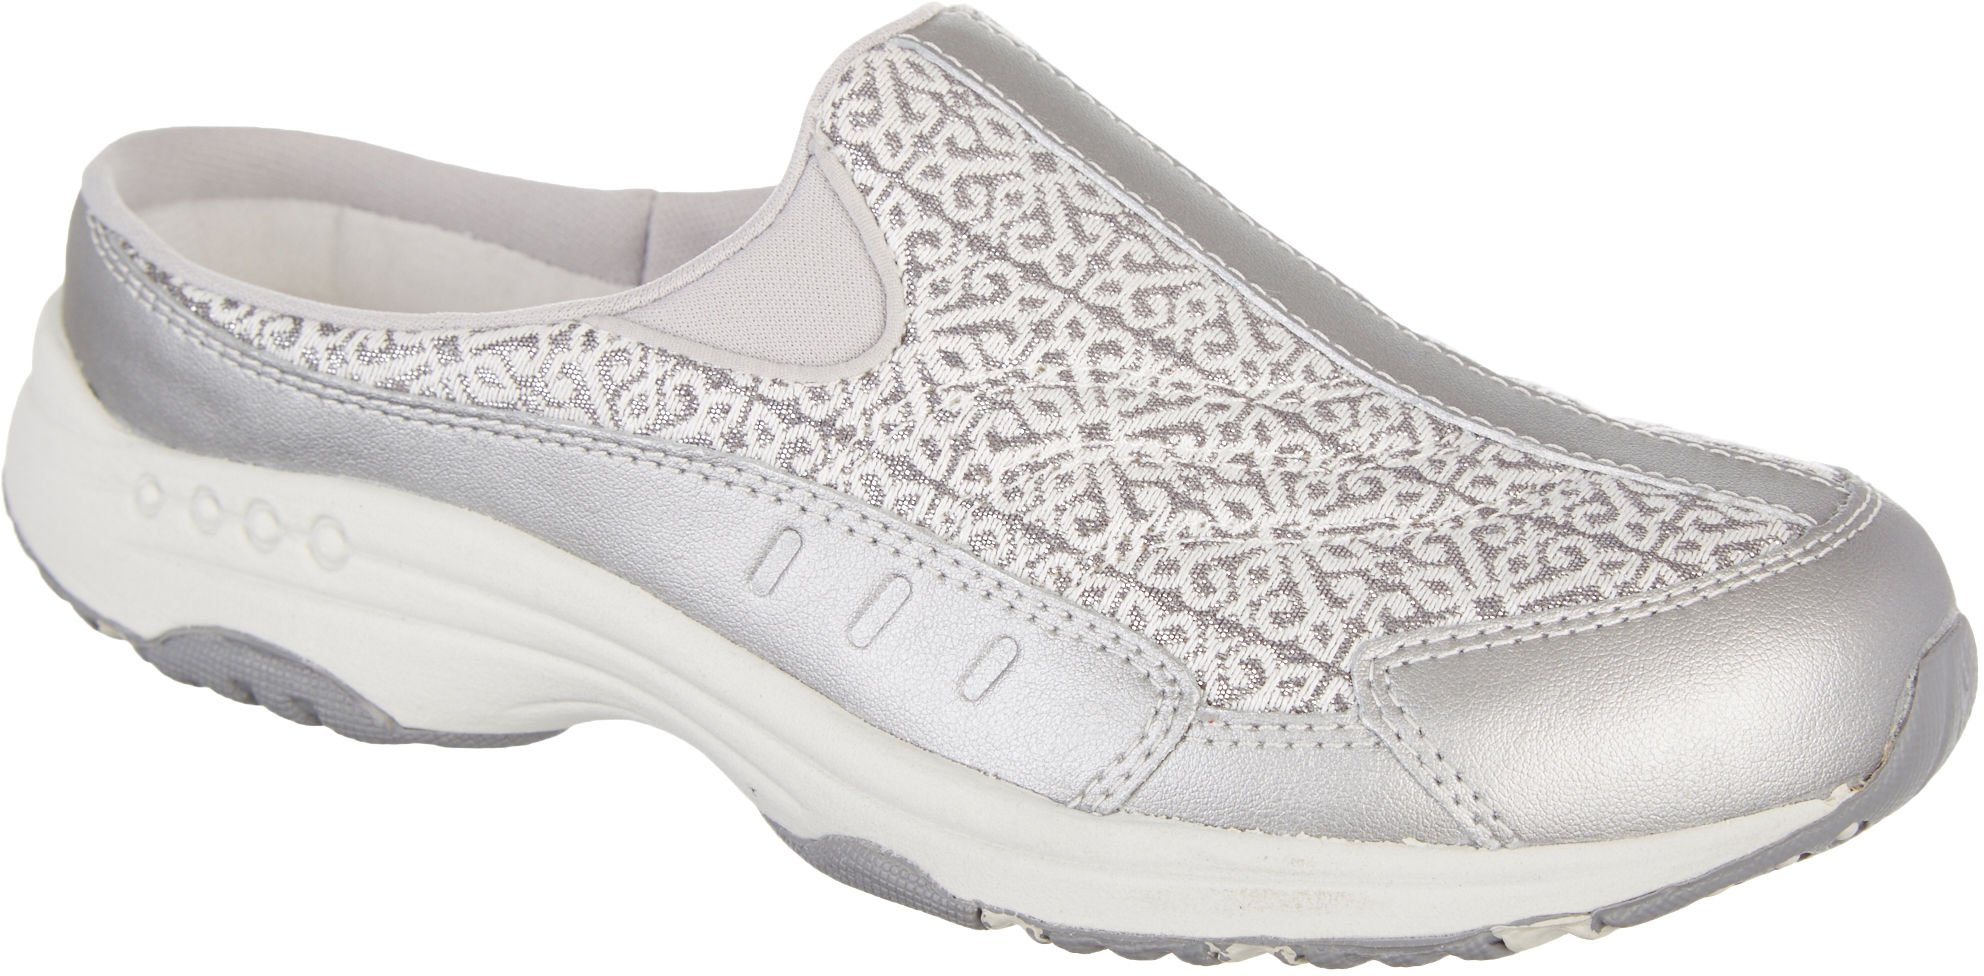 Easy Spirit Women's TRAVELTIME218 Mule, Silver, 8.5 W US